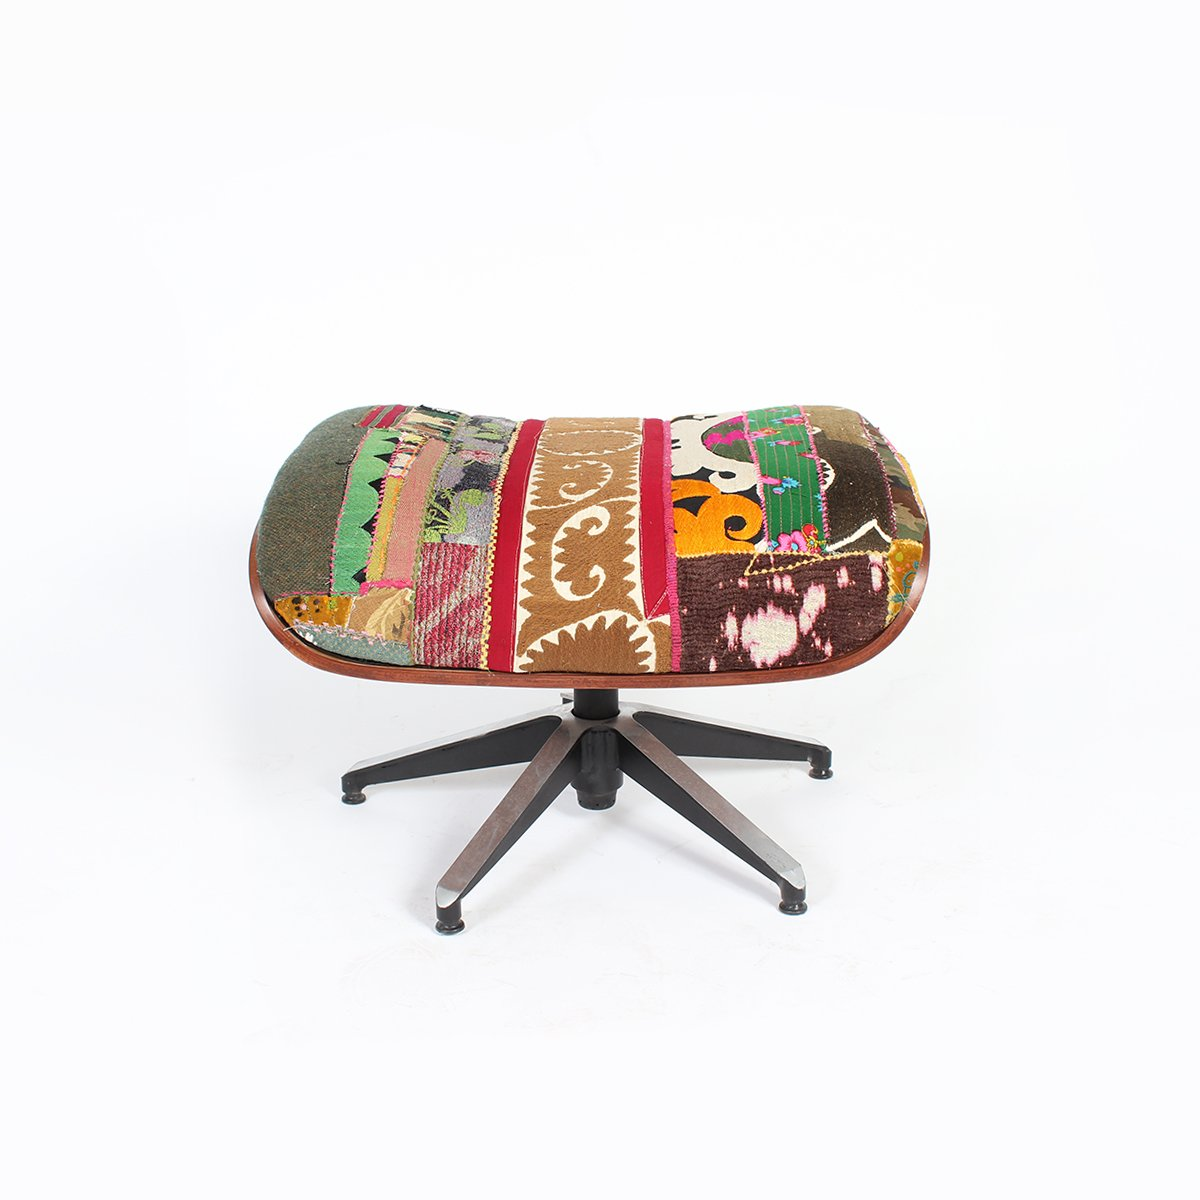 Eames la bokja by atelier bokja for sale at pamono for Chaise patchwork eames